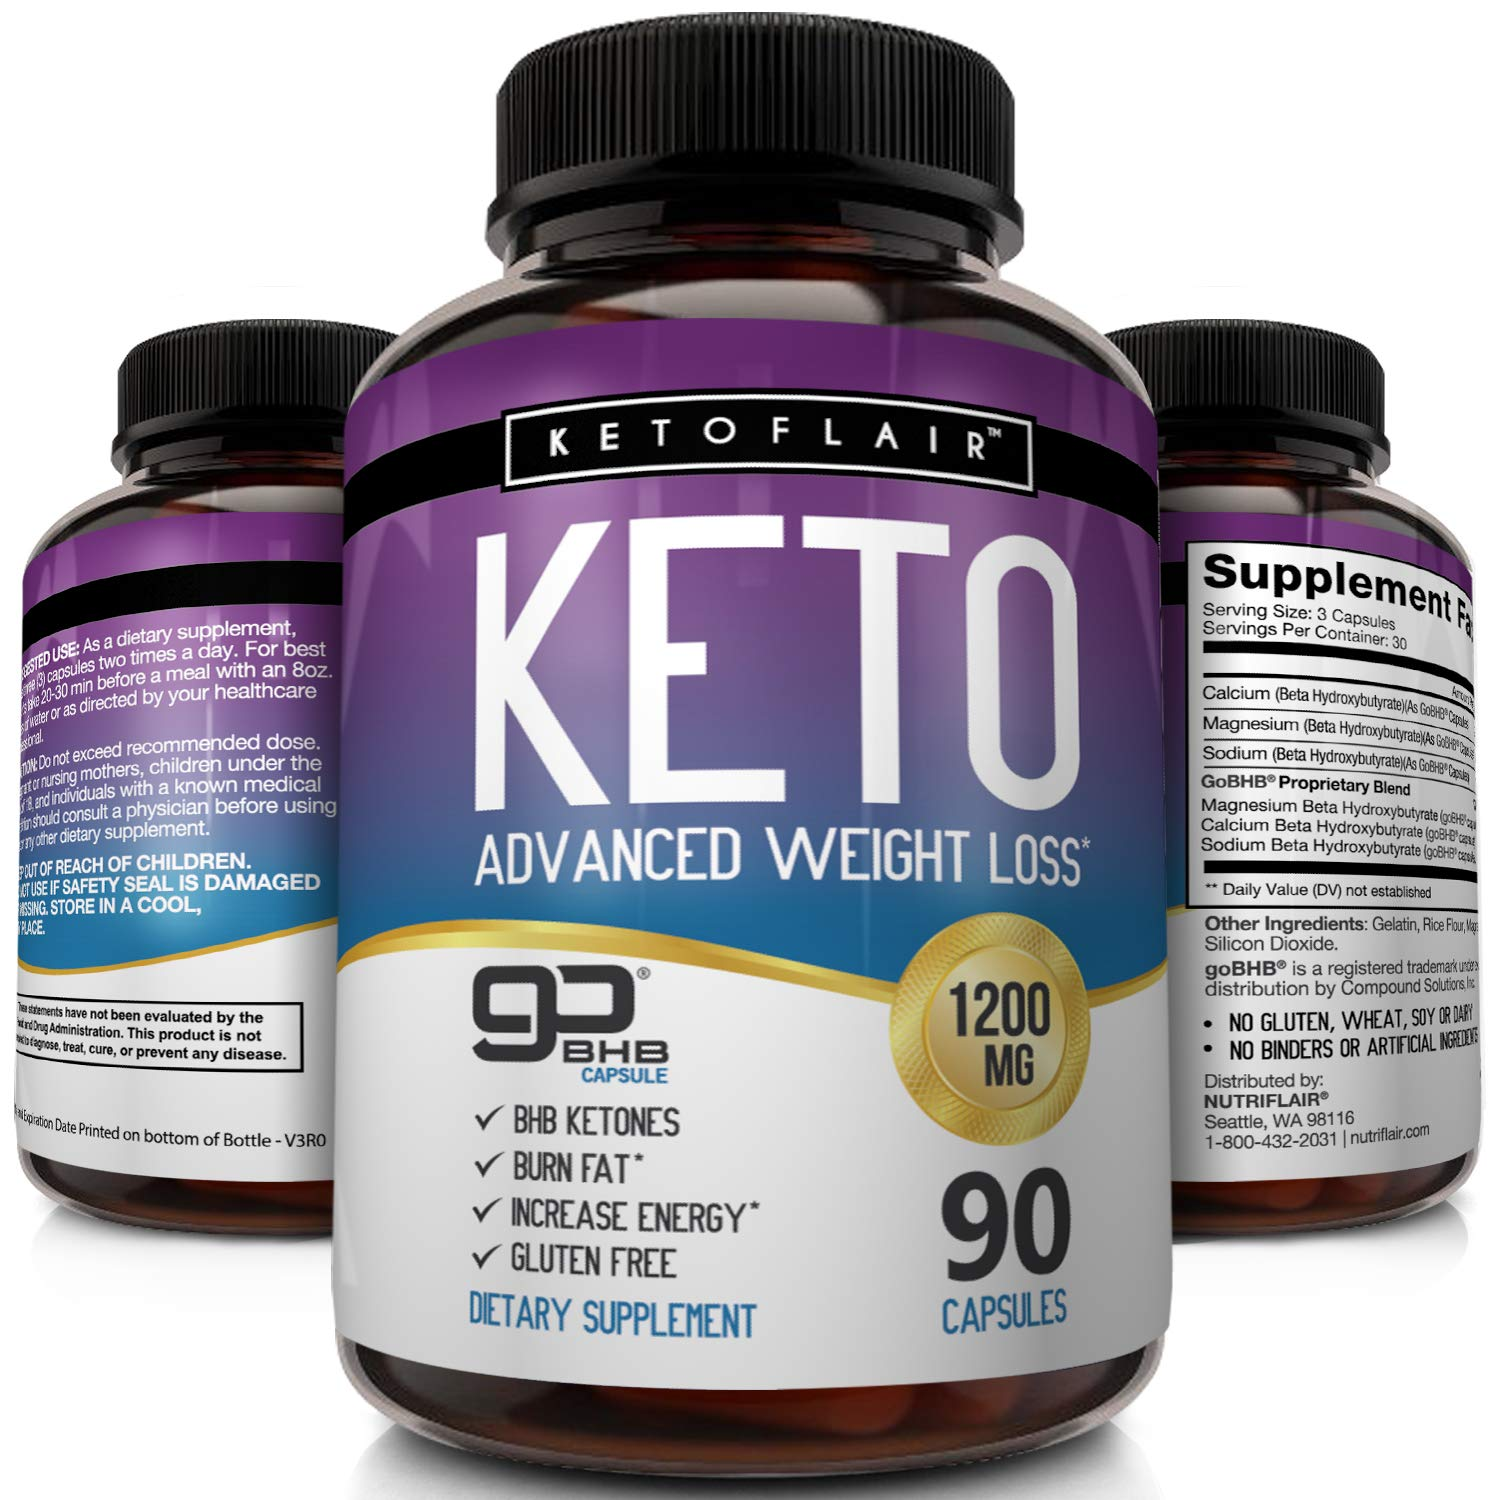 Best Keto Diet Pills GoBHB 1200mg, 90 Capsules Advanced Weight Loss Ketosis Supplement - Natural BHB Salts (beta hydroxybutyrate) Ketogenic Fat Burner, Carb Blocker, Non-GMO - Best Weight Loss Support by NutriFlair (Image #1)